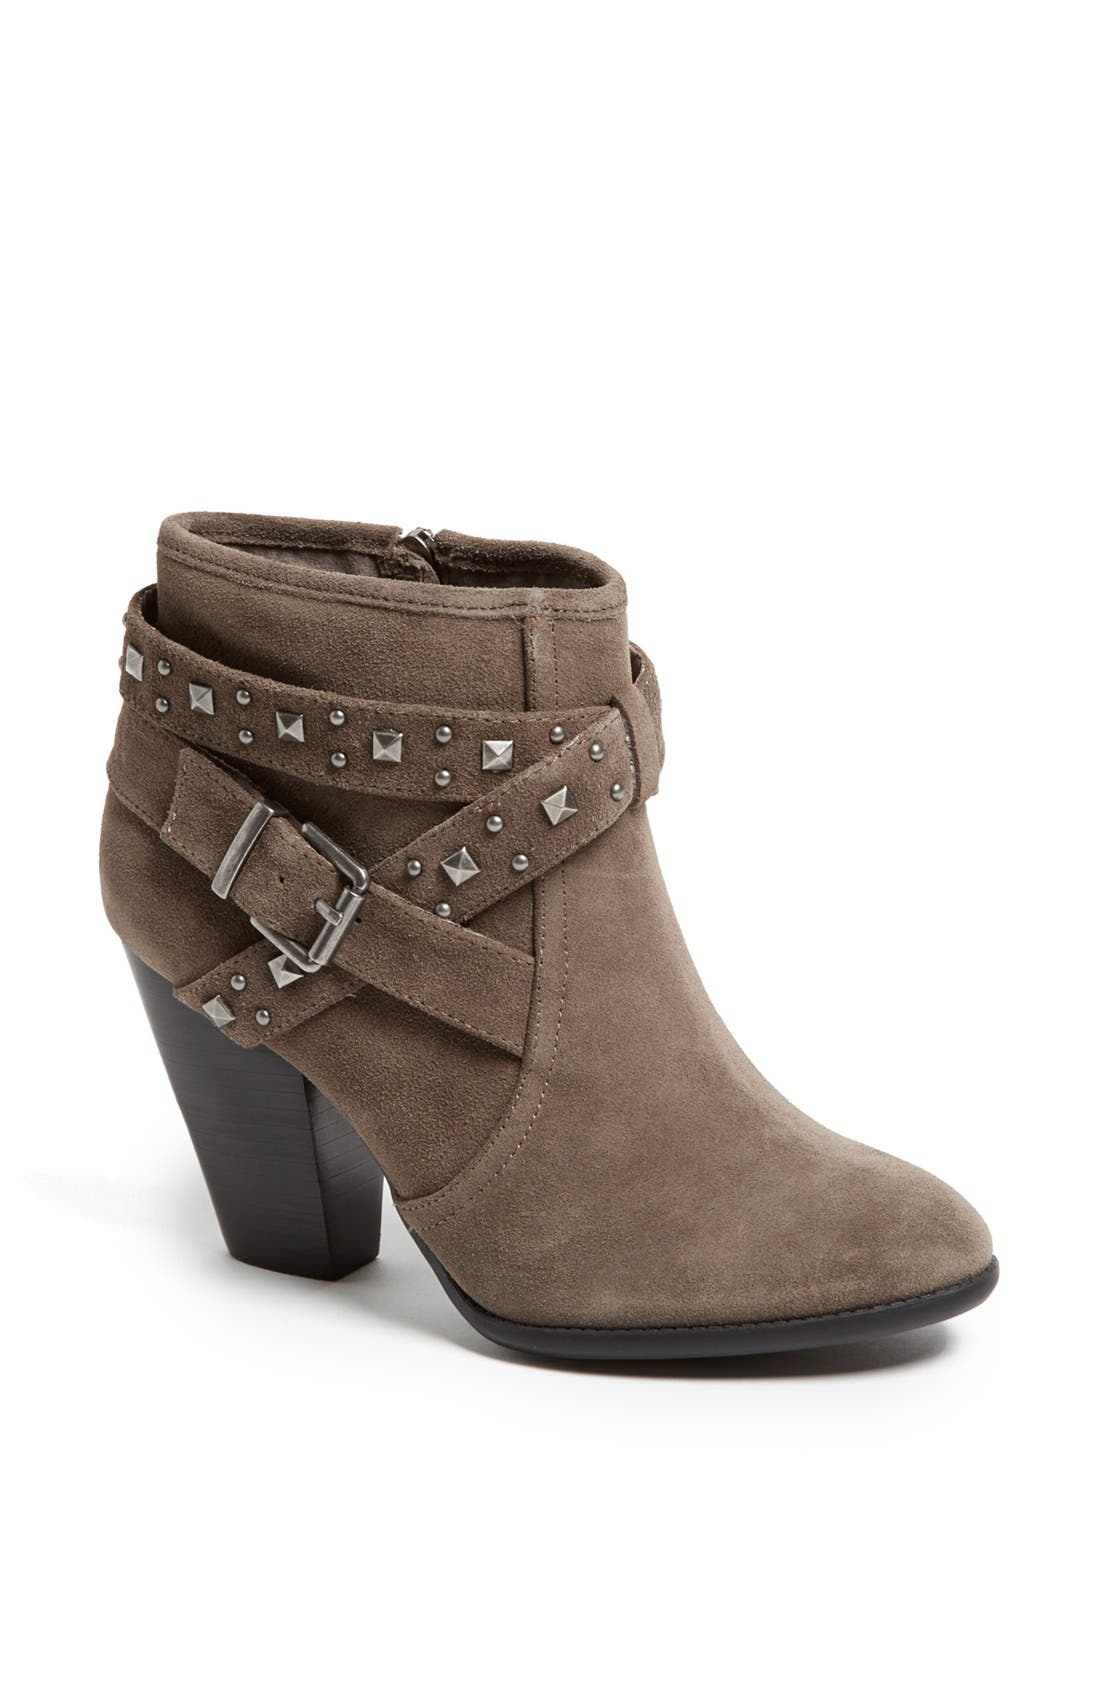 Alternate Image 1 Selected - Sole Society 'Kita' Bootie